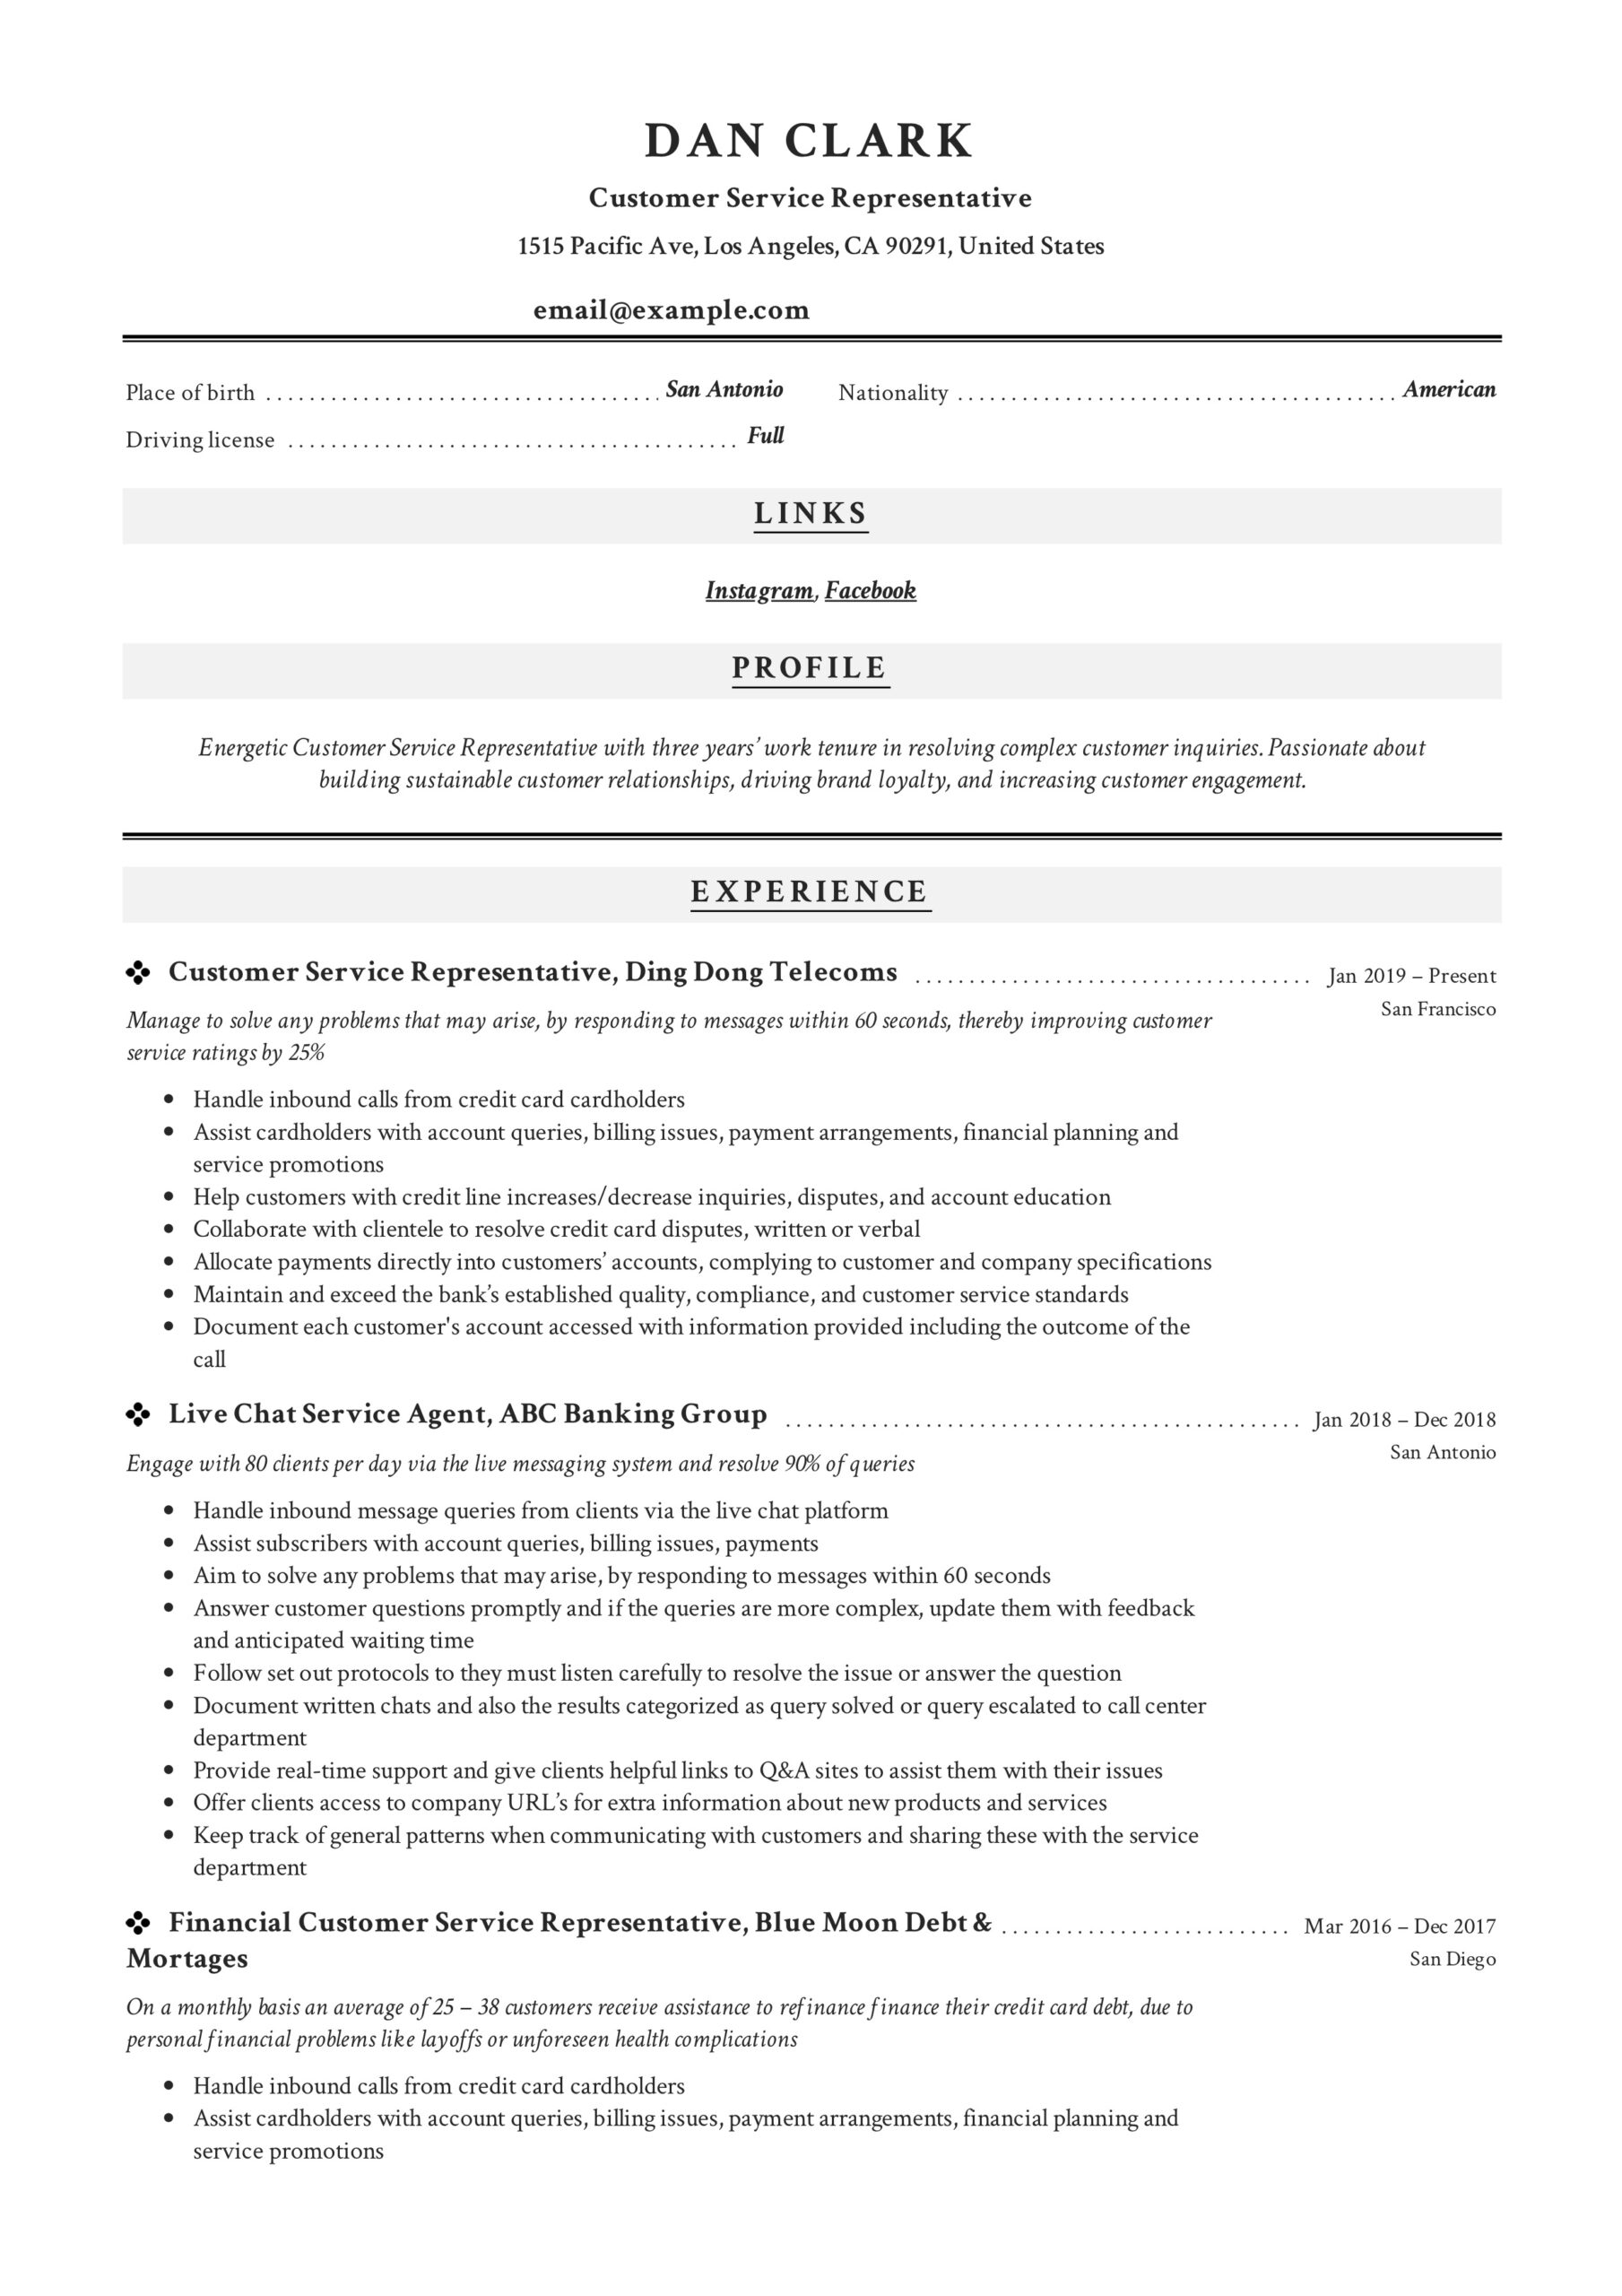 to customer service representative resume pdf samples for position financial analyst Resume Resume For Customer Service Position